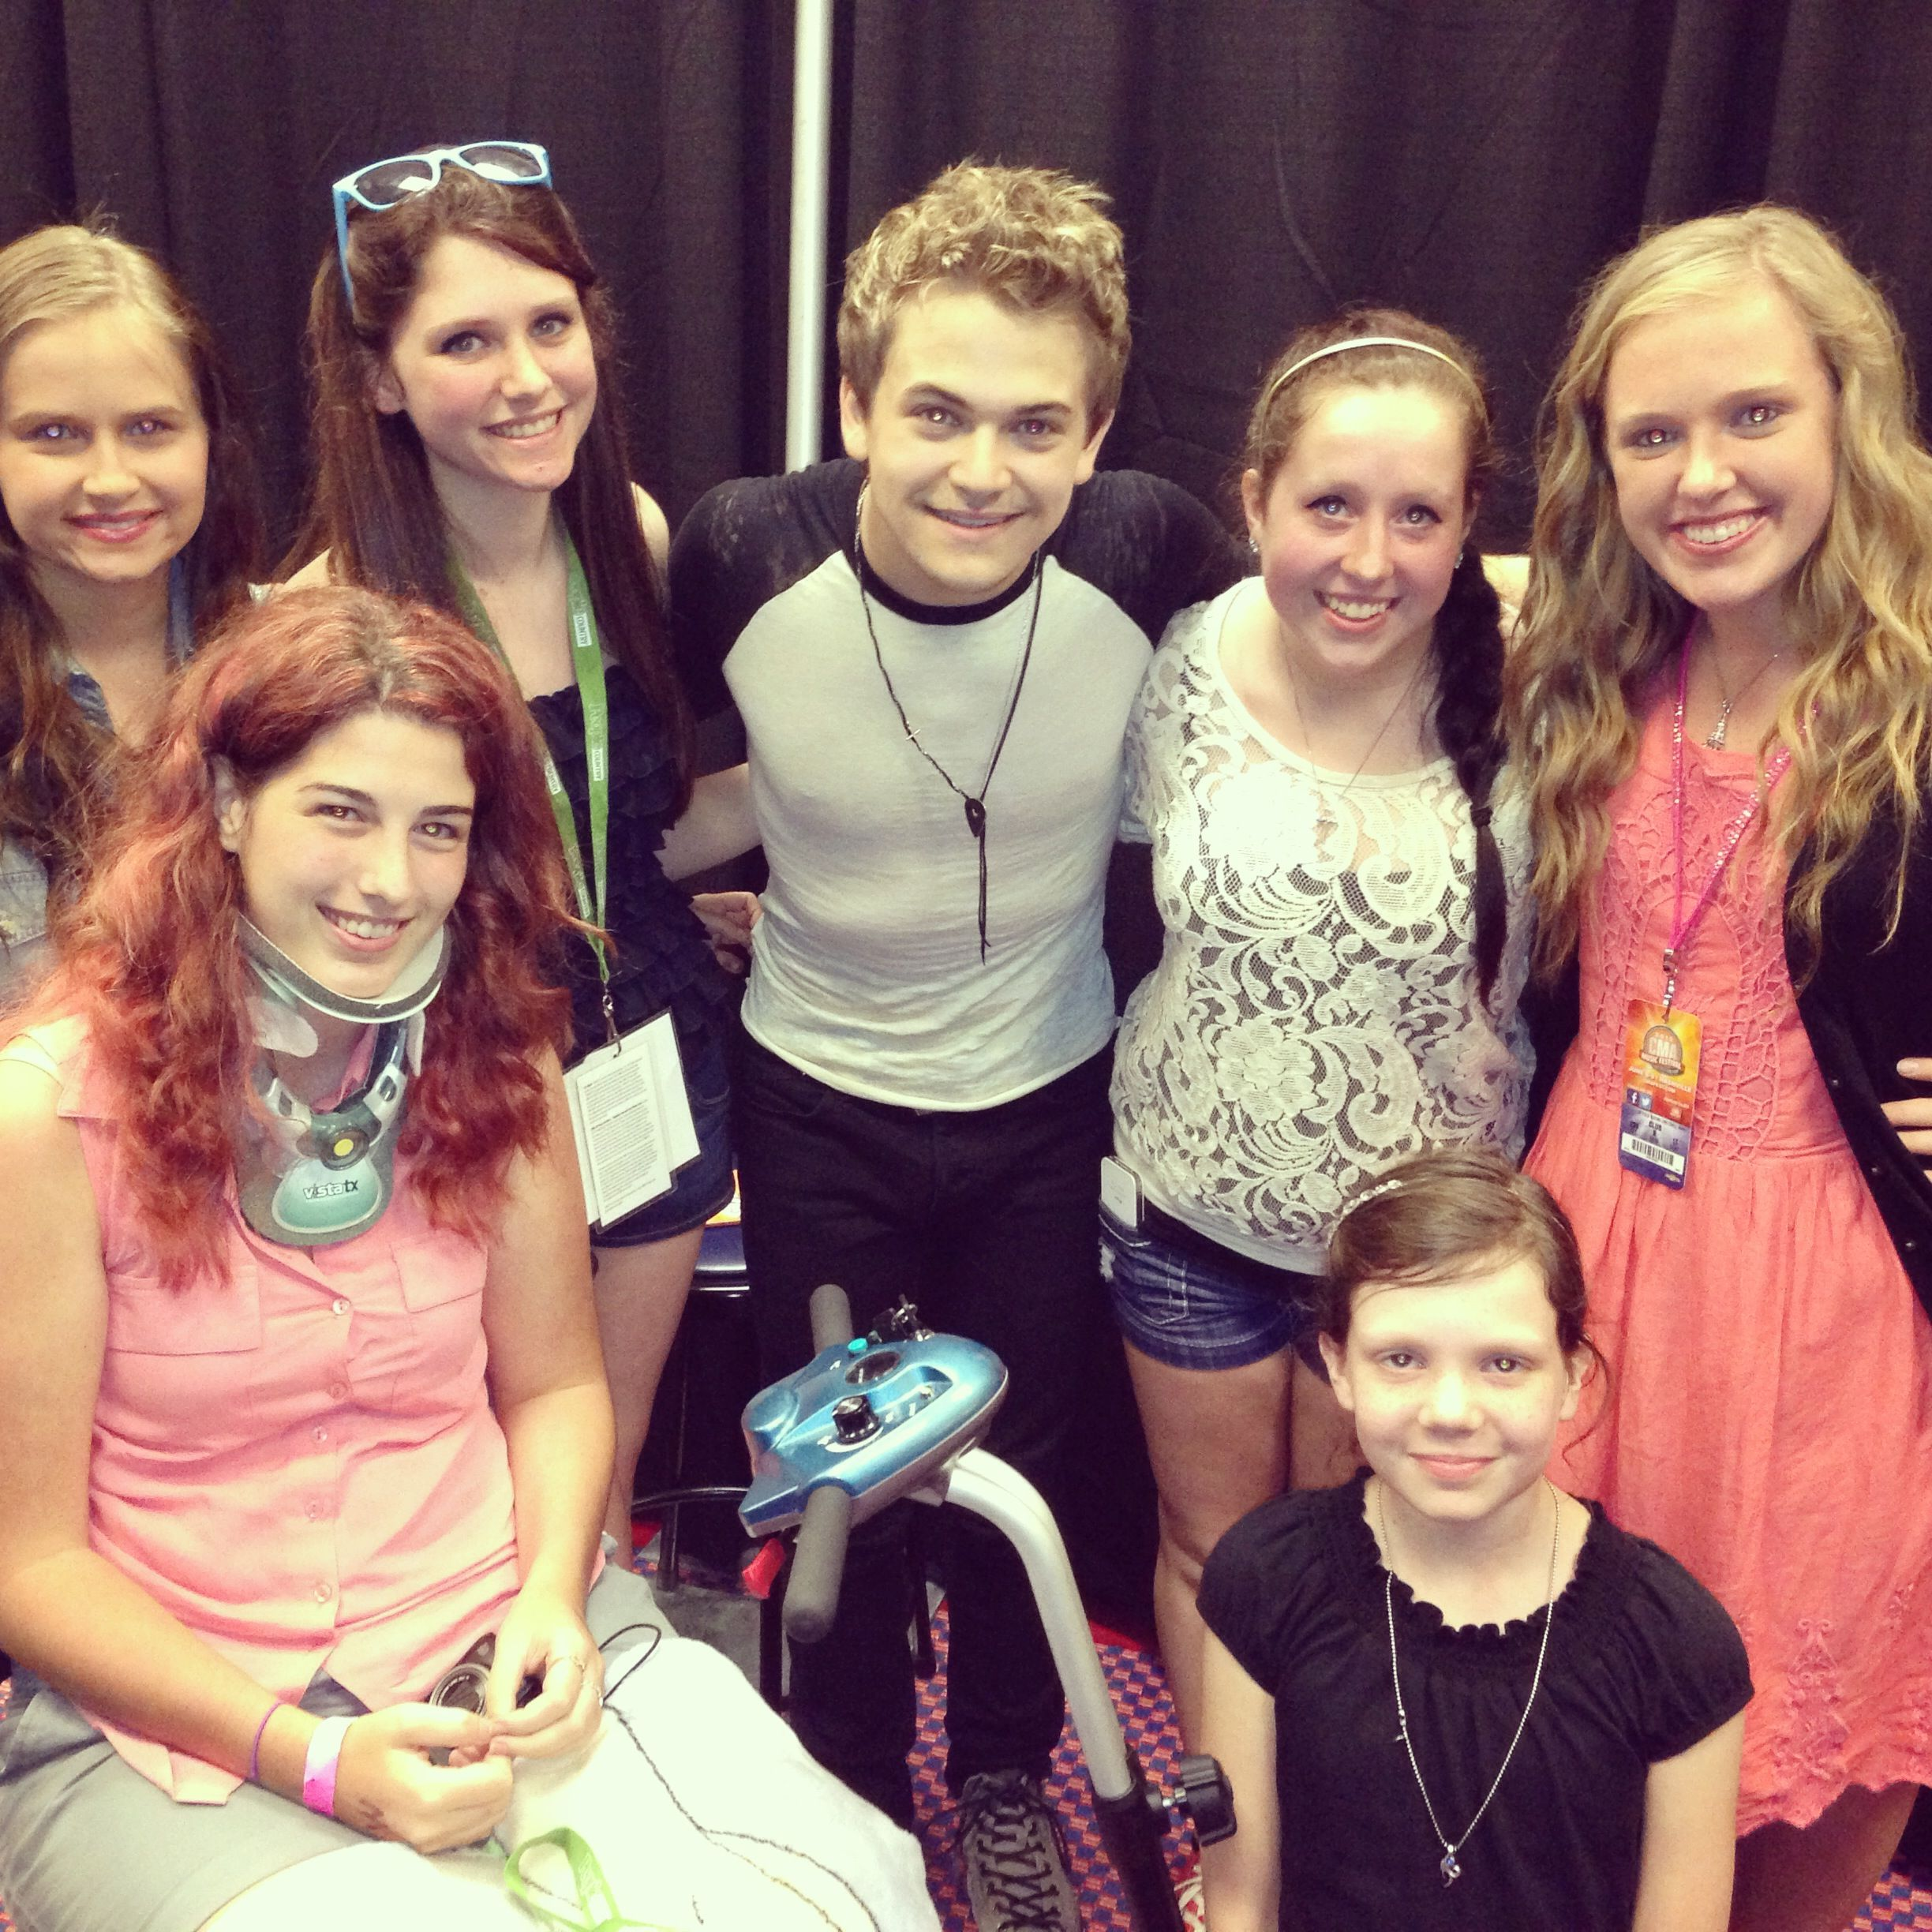 Congrats to the hunter hayes meet and greet winners cmafest cma congrats to the hunter hayes meet and greet winners cmafest kristyandbryce Images